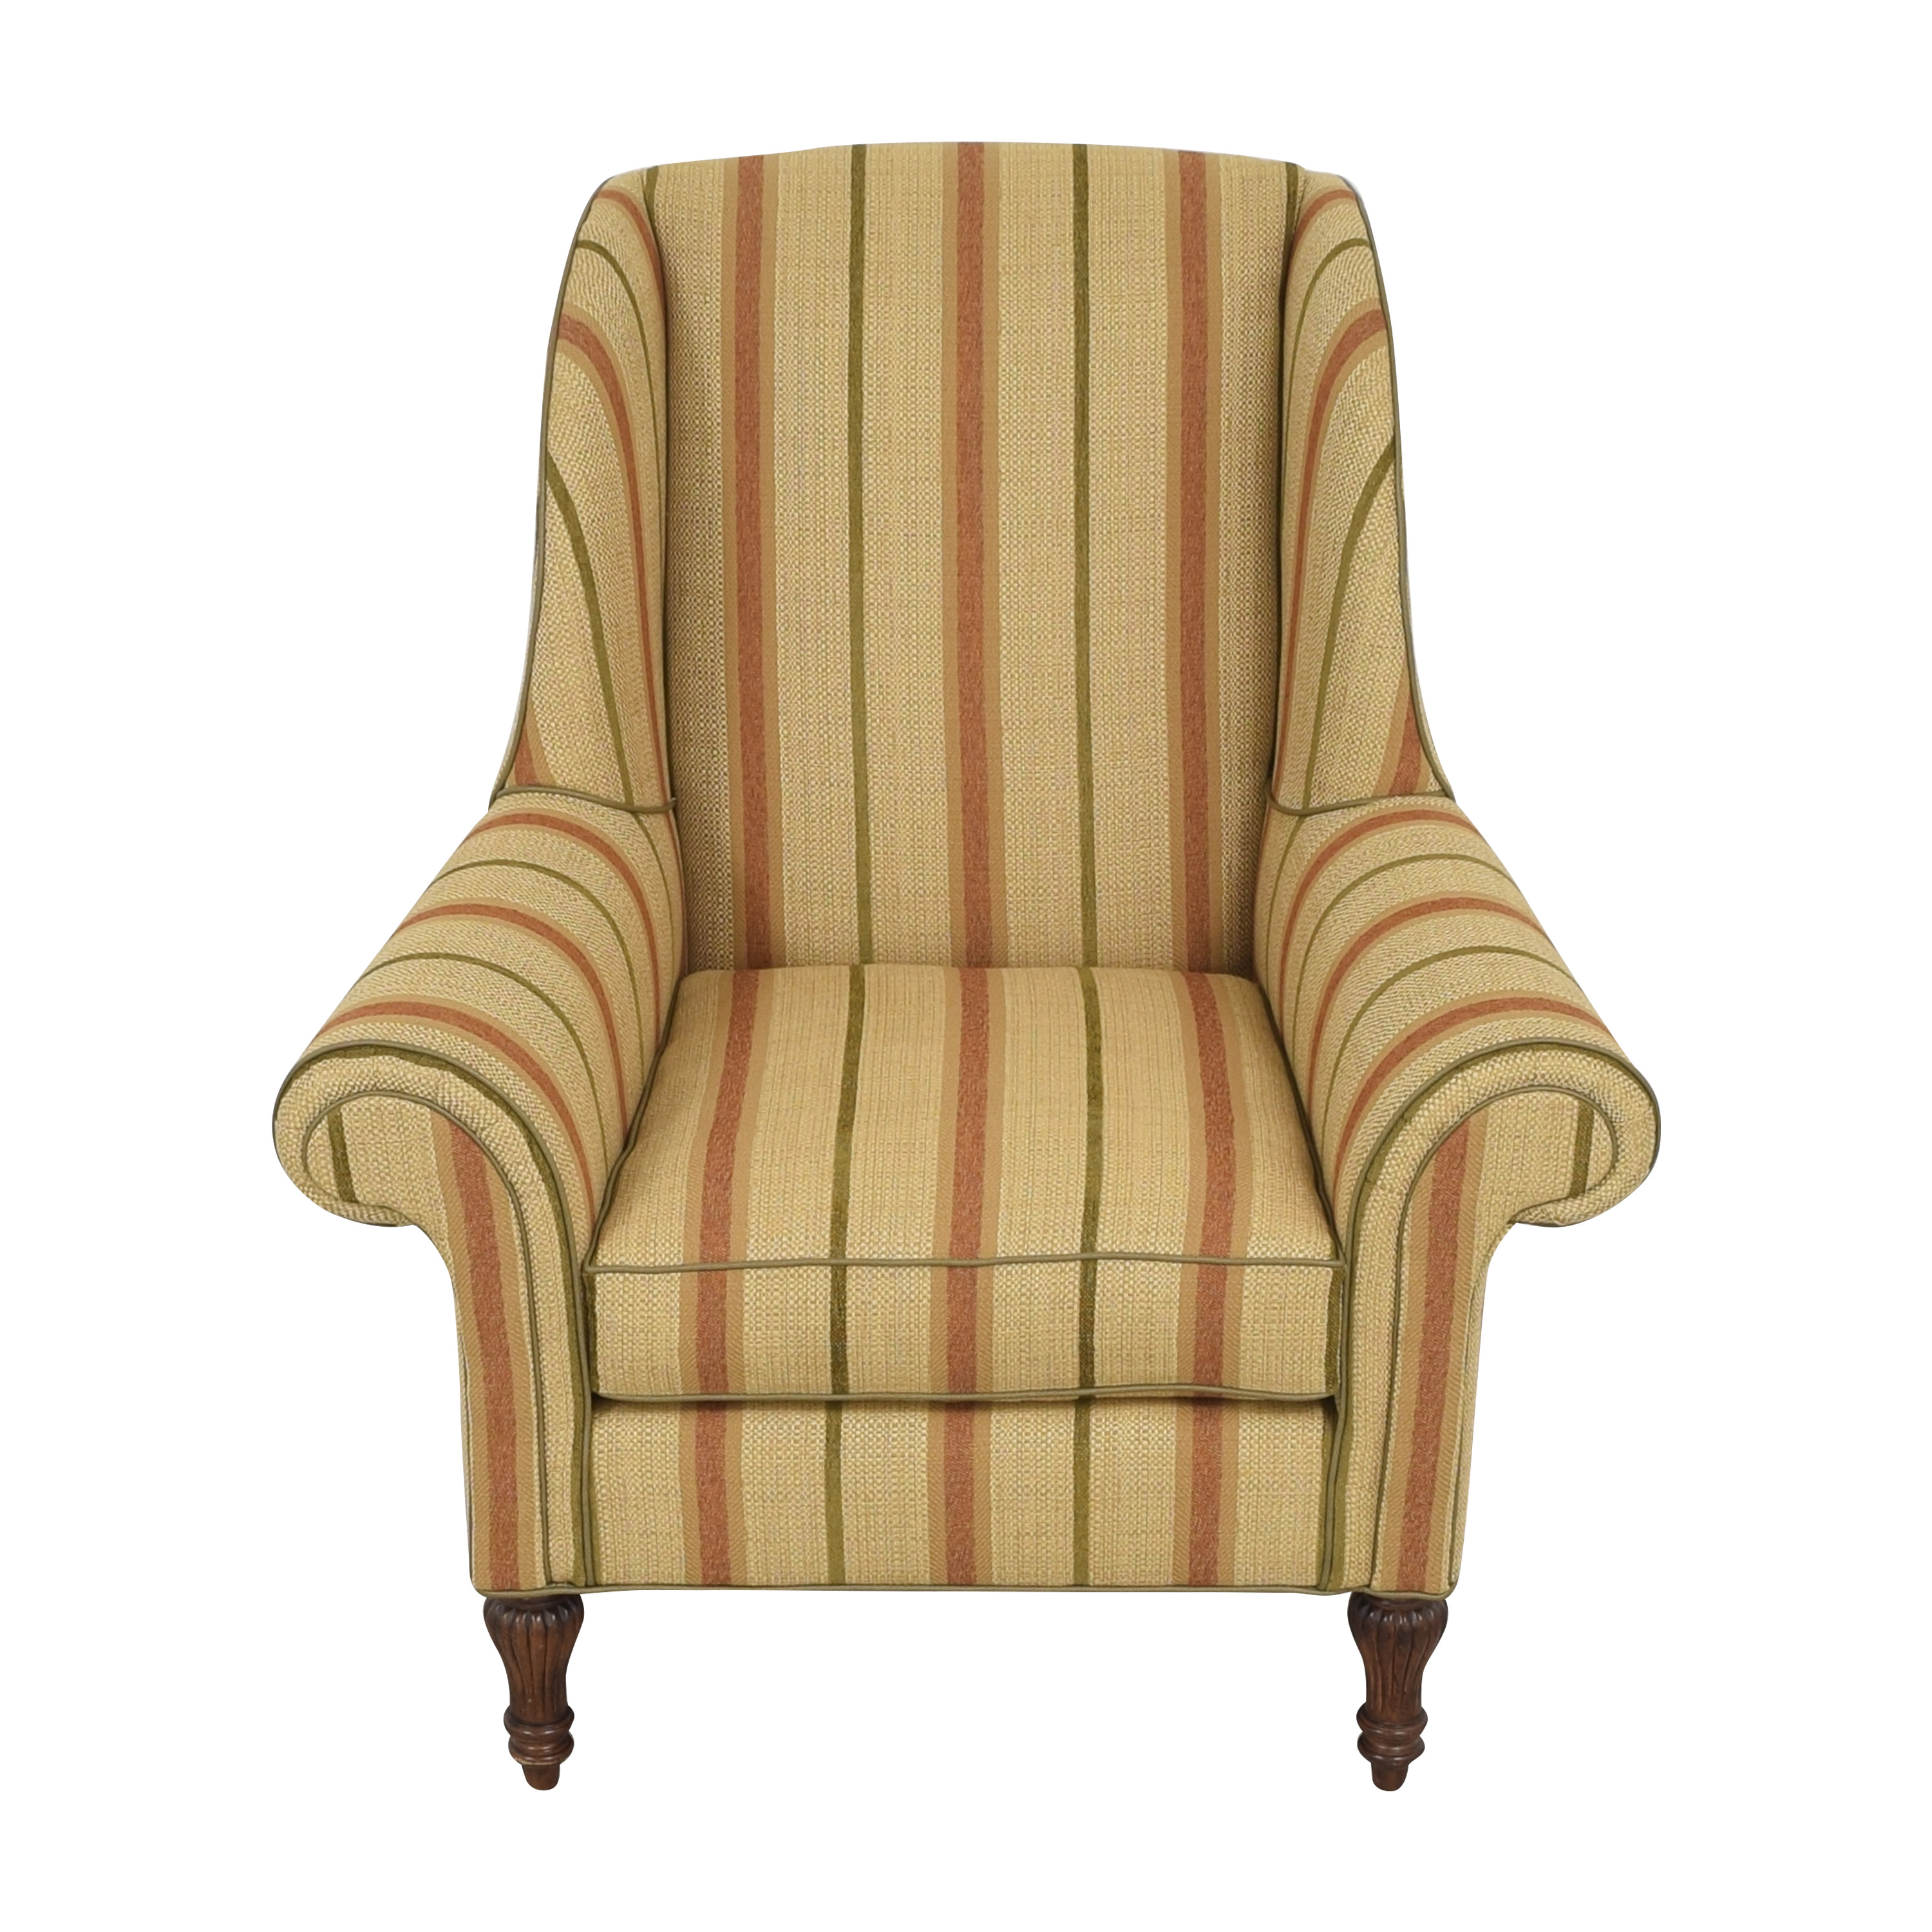 Thomasville Thomasville Striped Wingback Chair discount